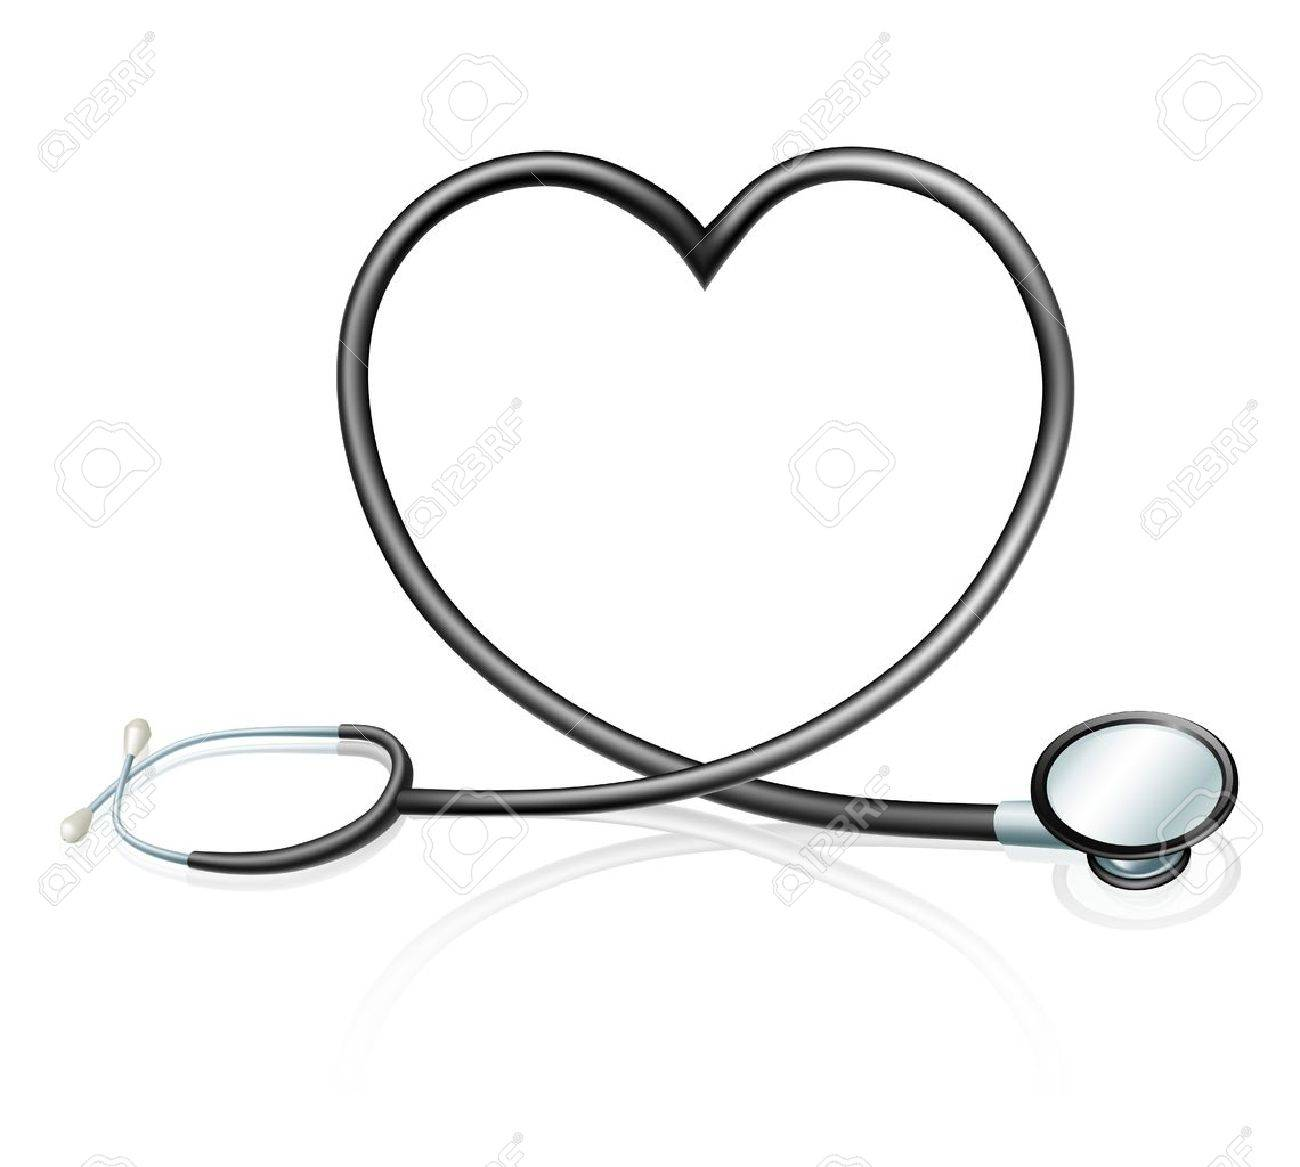 1300x1167 Heart Health Concept, A Stethoscope Forming A Heart Shape Royalty